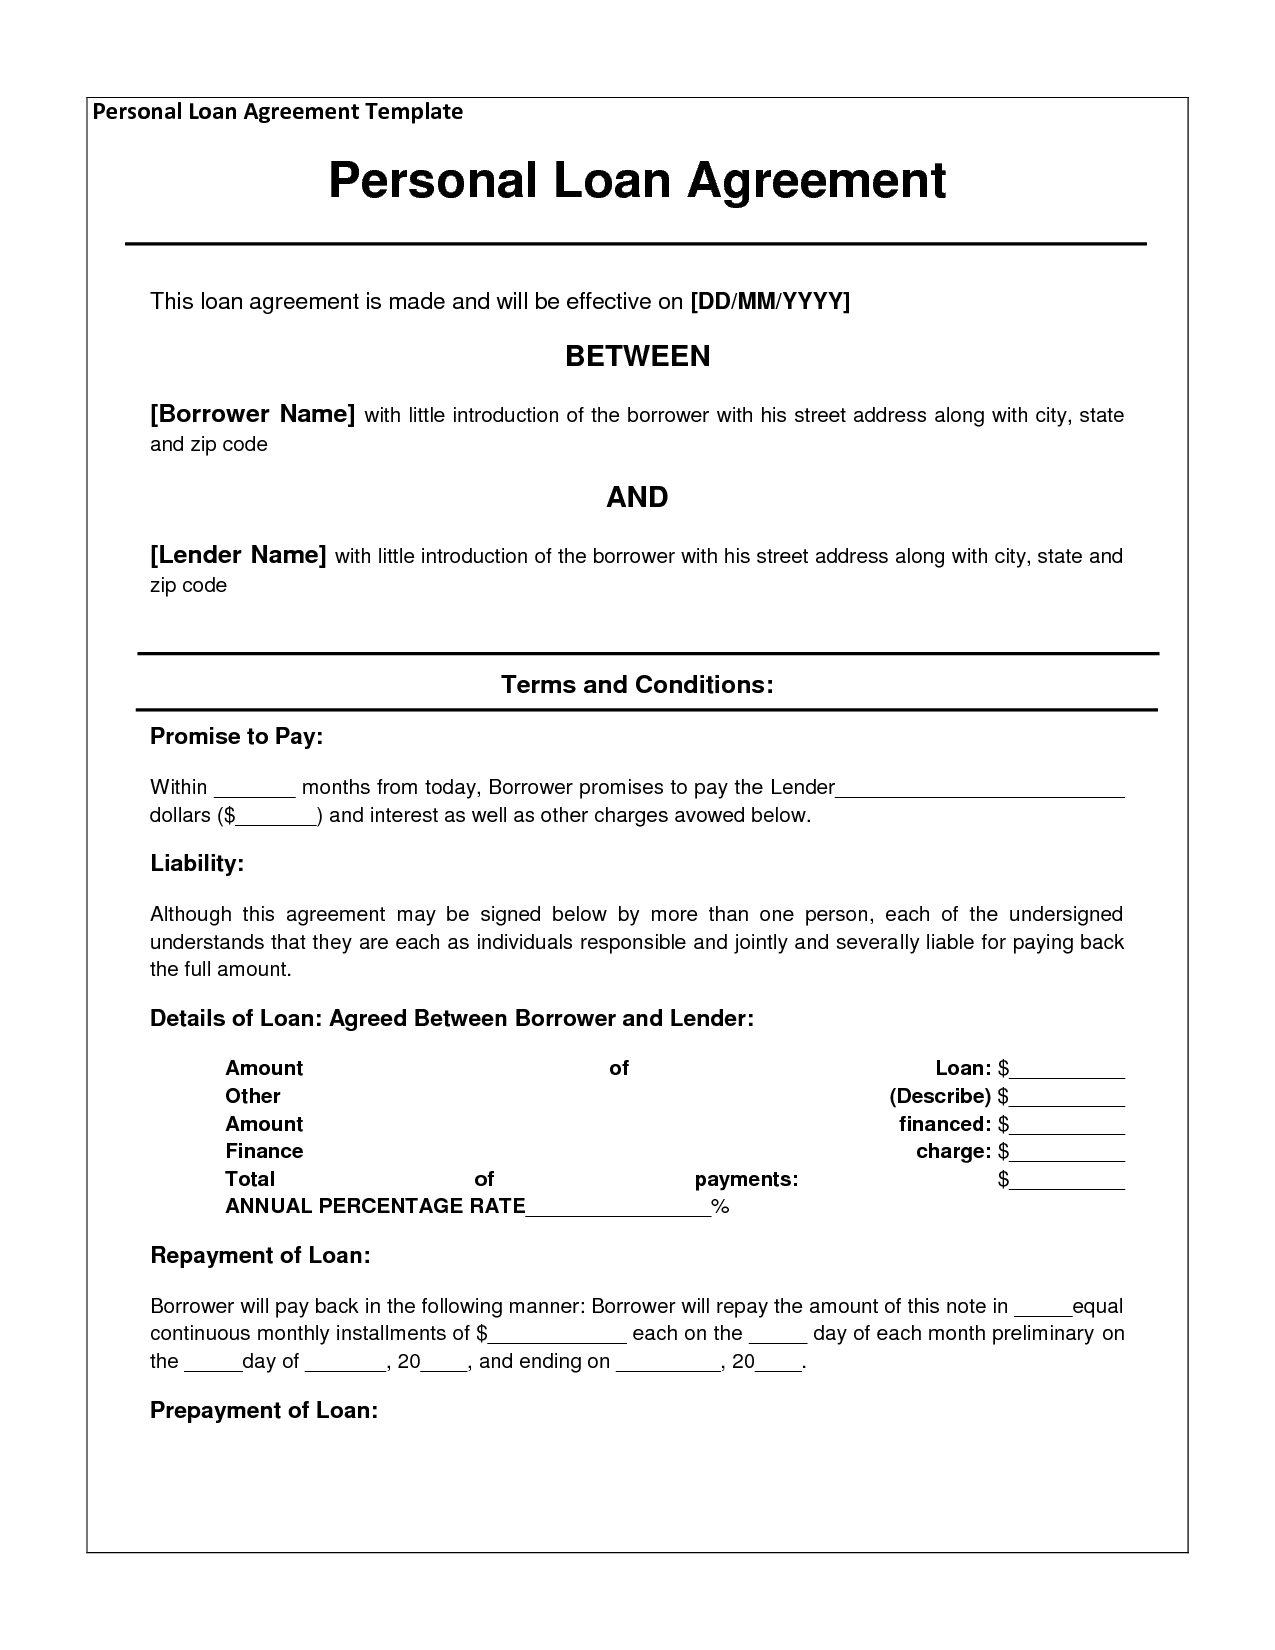 Free personal loan agreement form template 1000 Approved in 2 – Money Contract Template